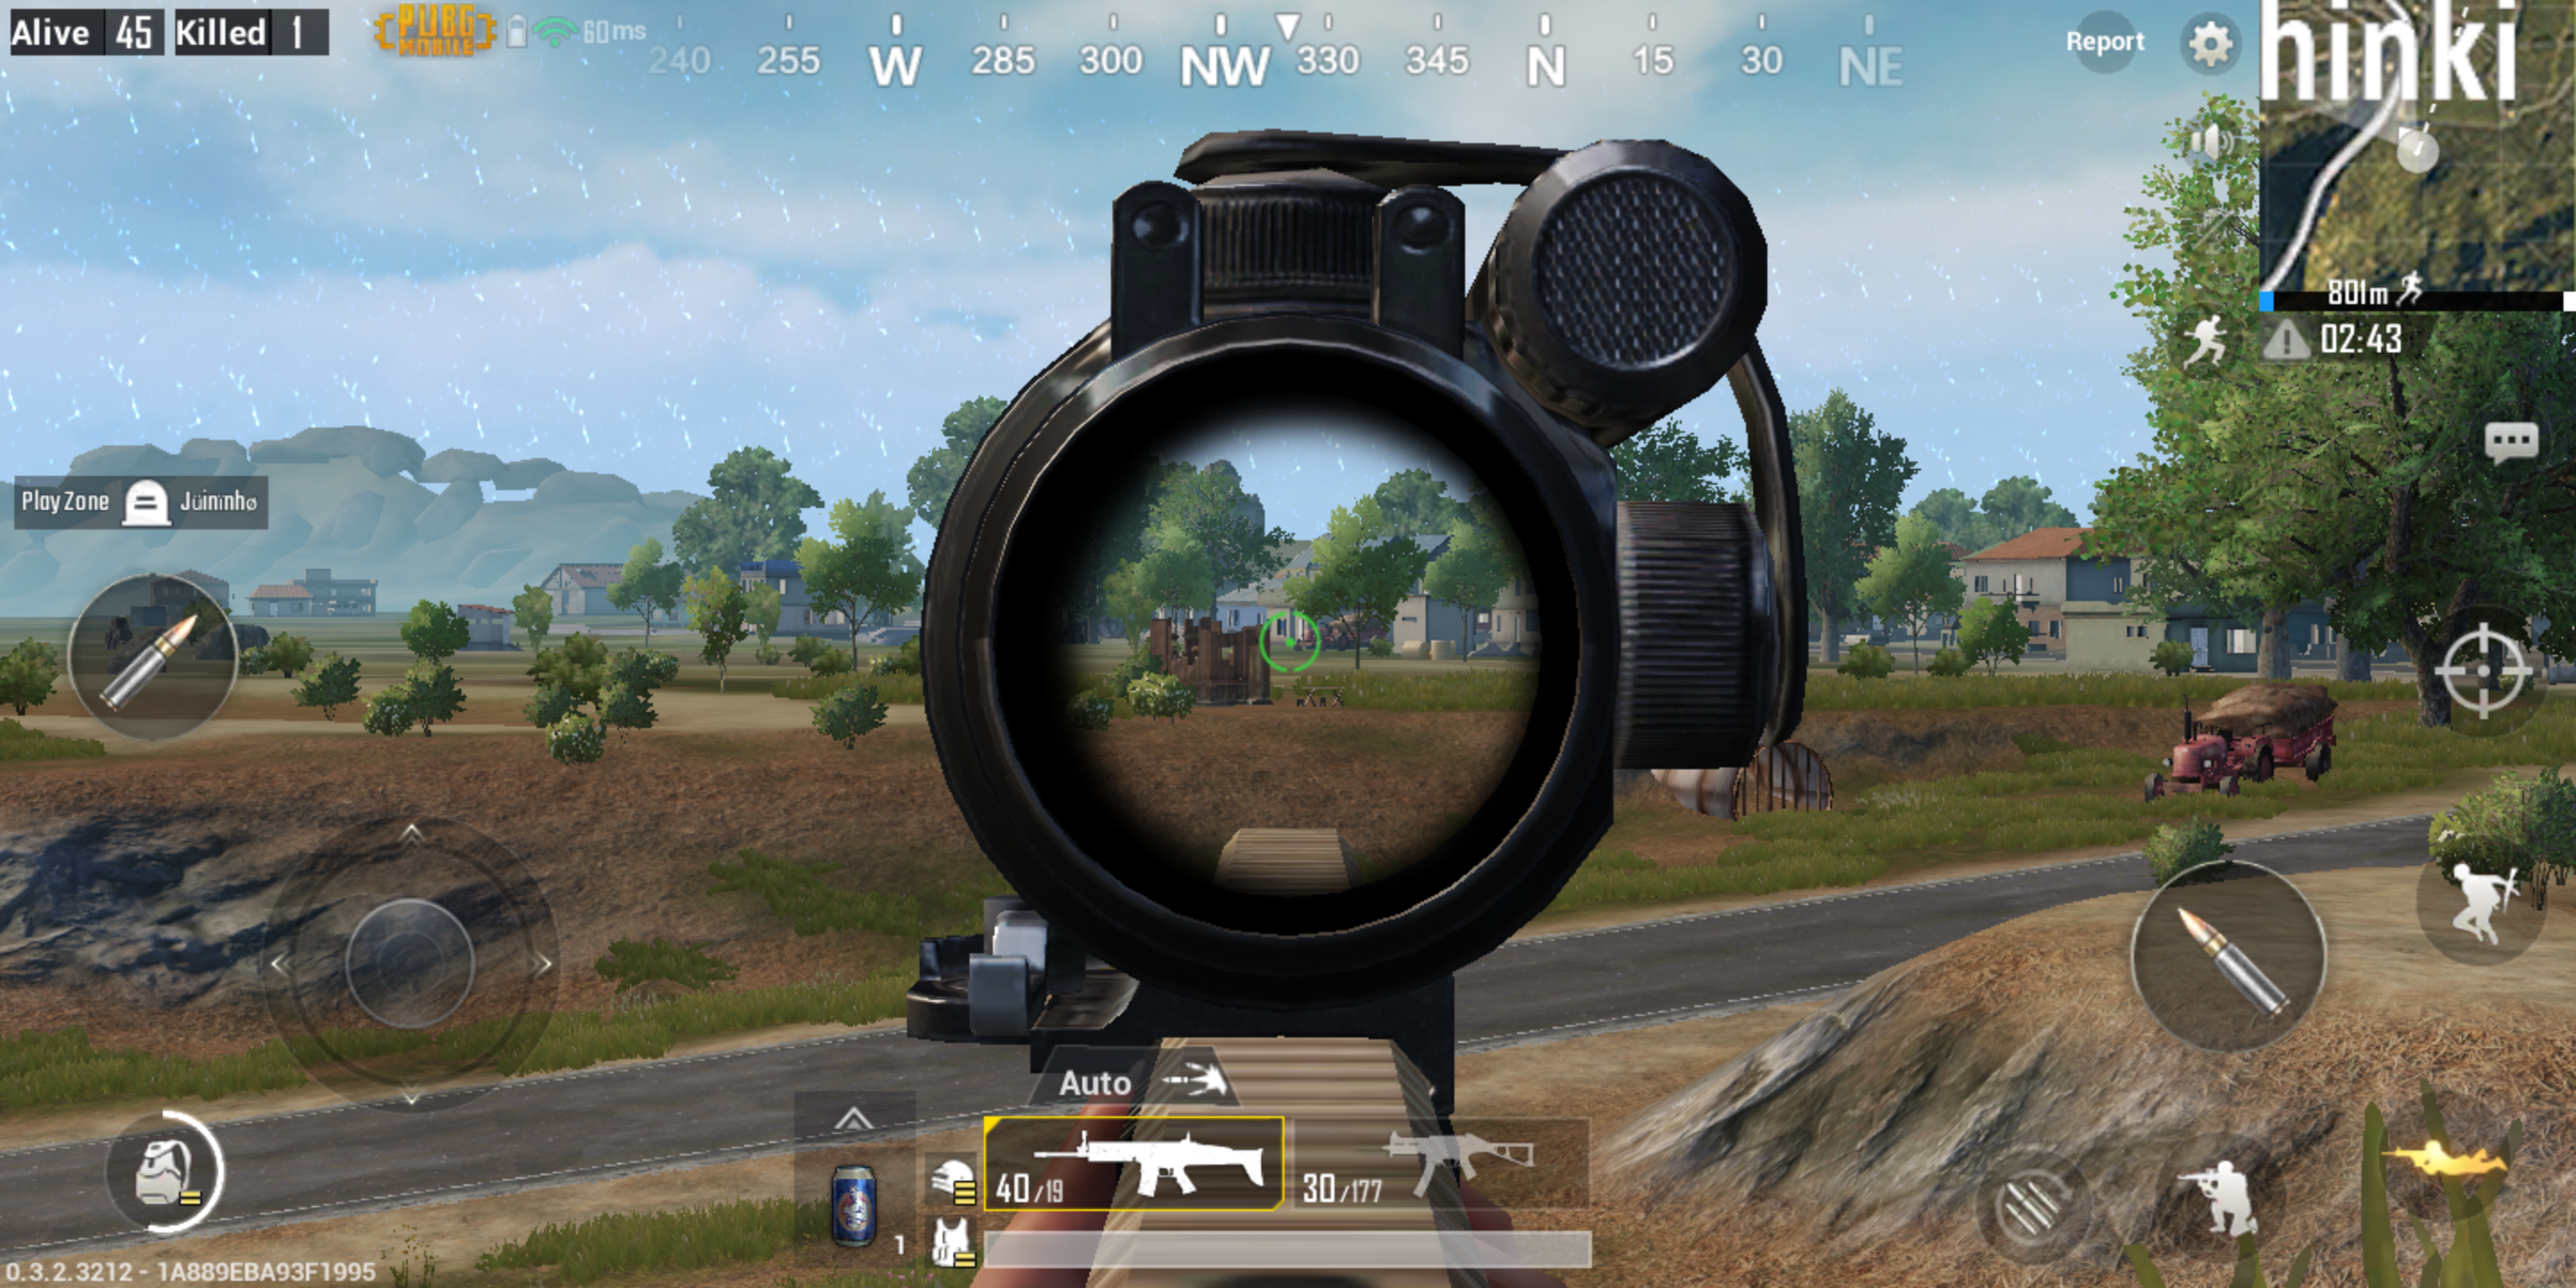 PC Master Race Invades 'PUBG Mobile' With Dishonorable Keyboards and